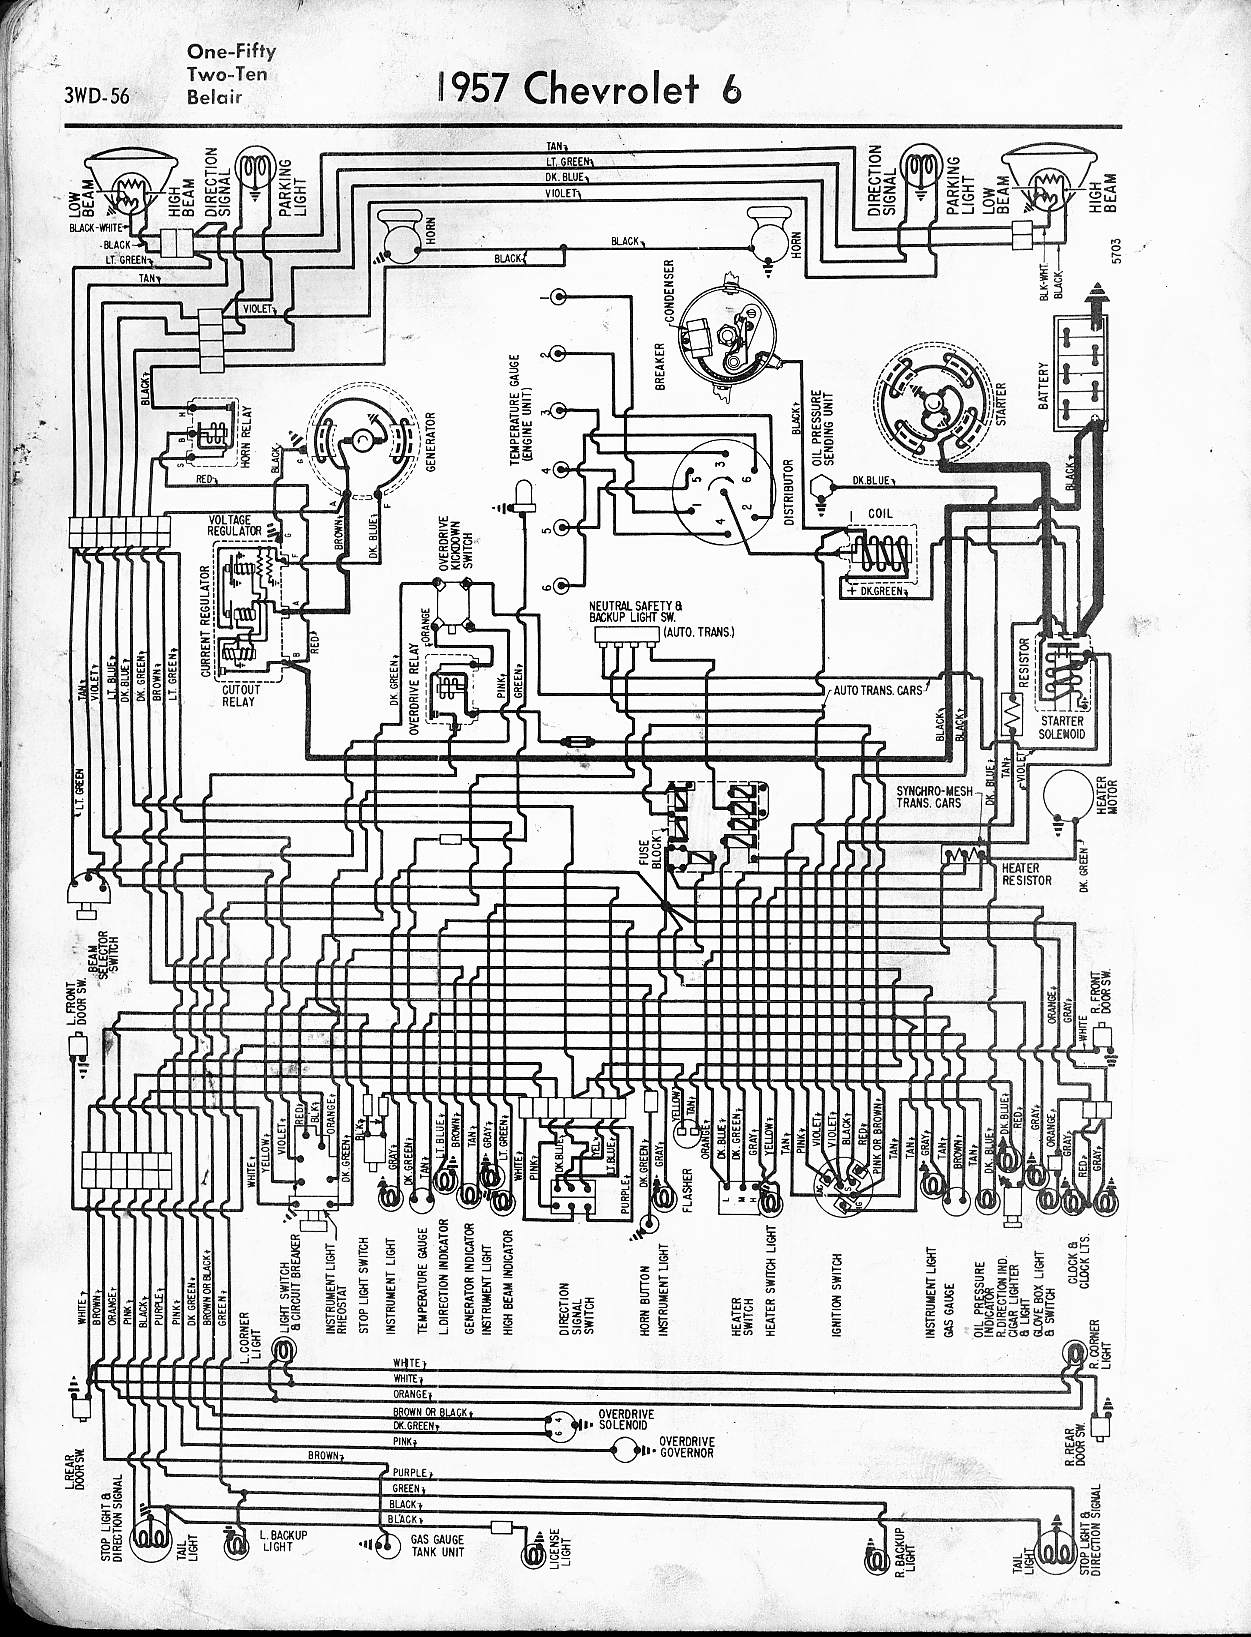 57 chevy wiring harness wiring diagram blog 1957 Chevy Build Sheets 57 65 chevy wiring diagrams 1955 chevy wiper wiring diagram 57 chevy wiring harness